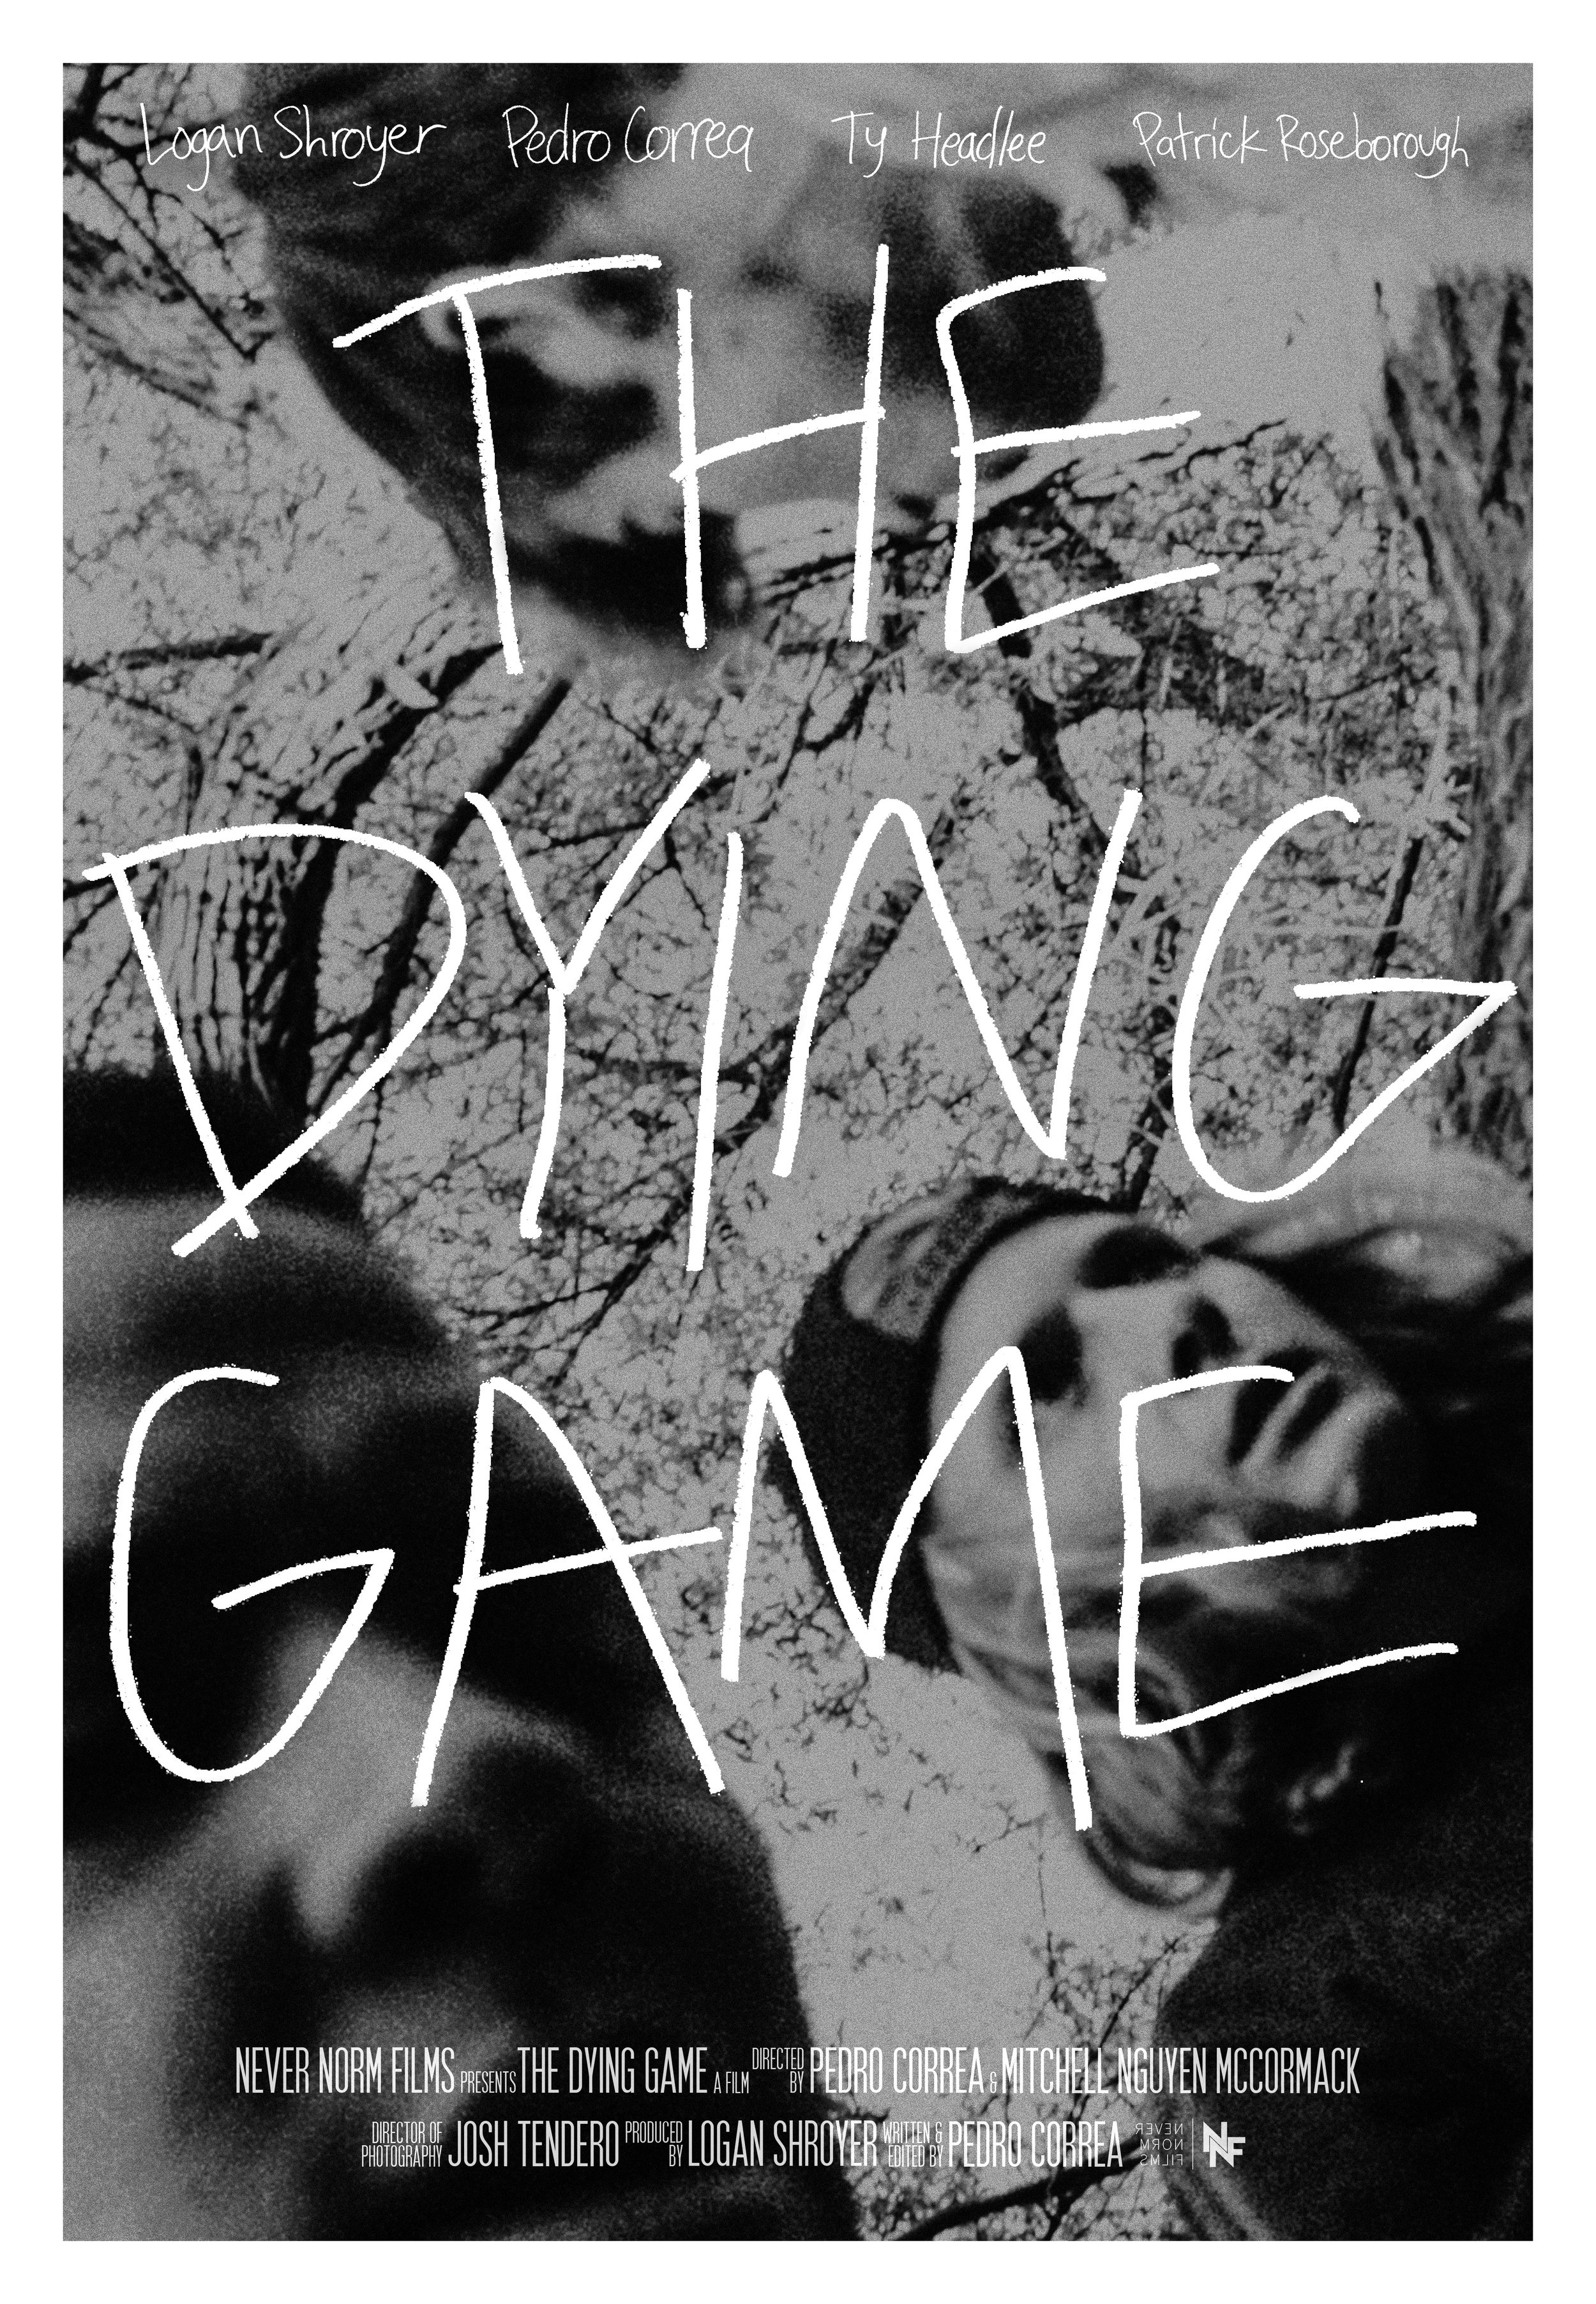 thedyinggame_poster_V2.jpg